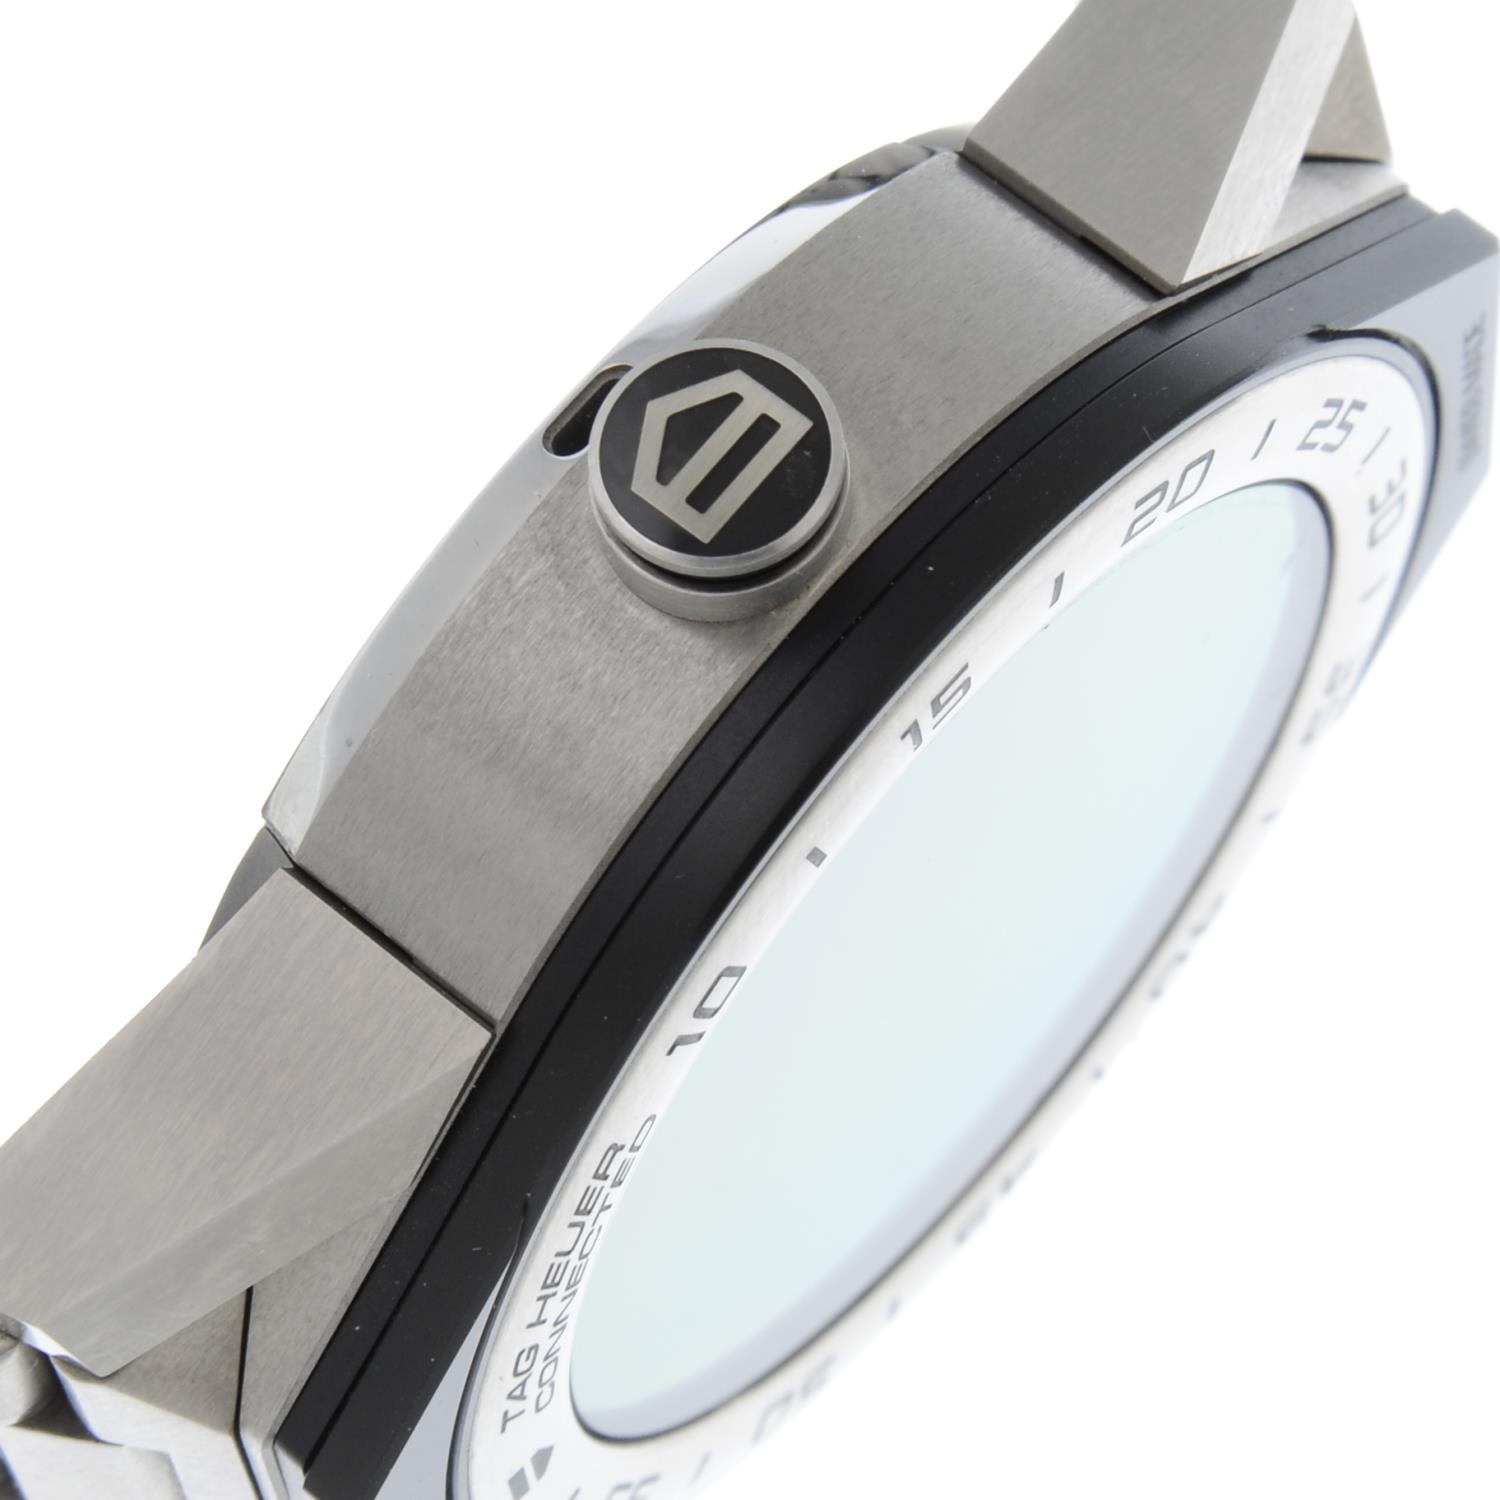 TAG HEUER - a Connected bracelet watch. - Image 5 of 6